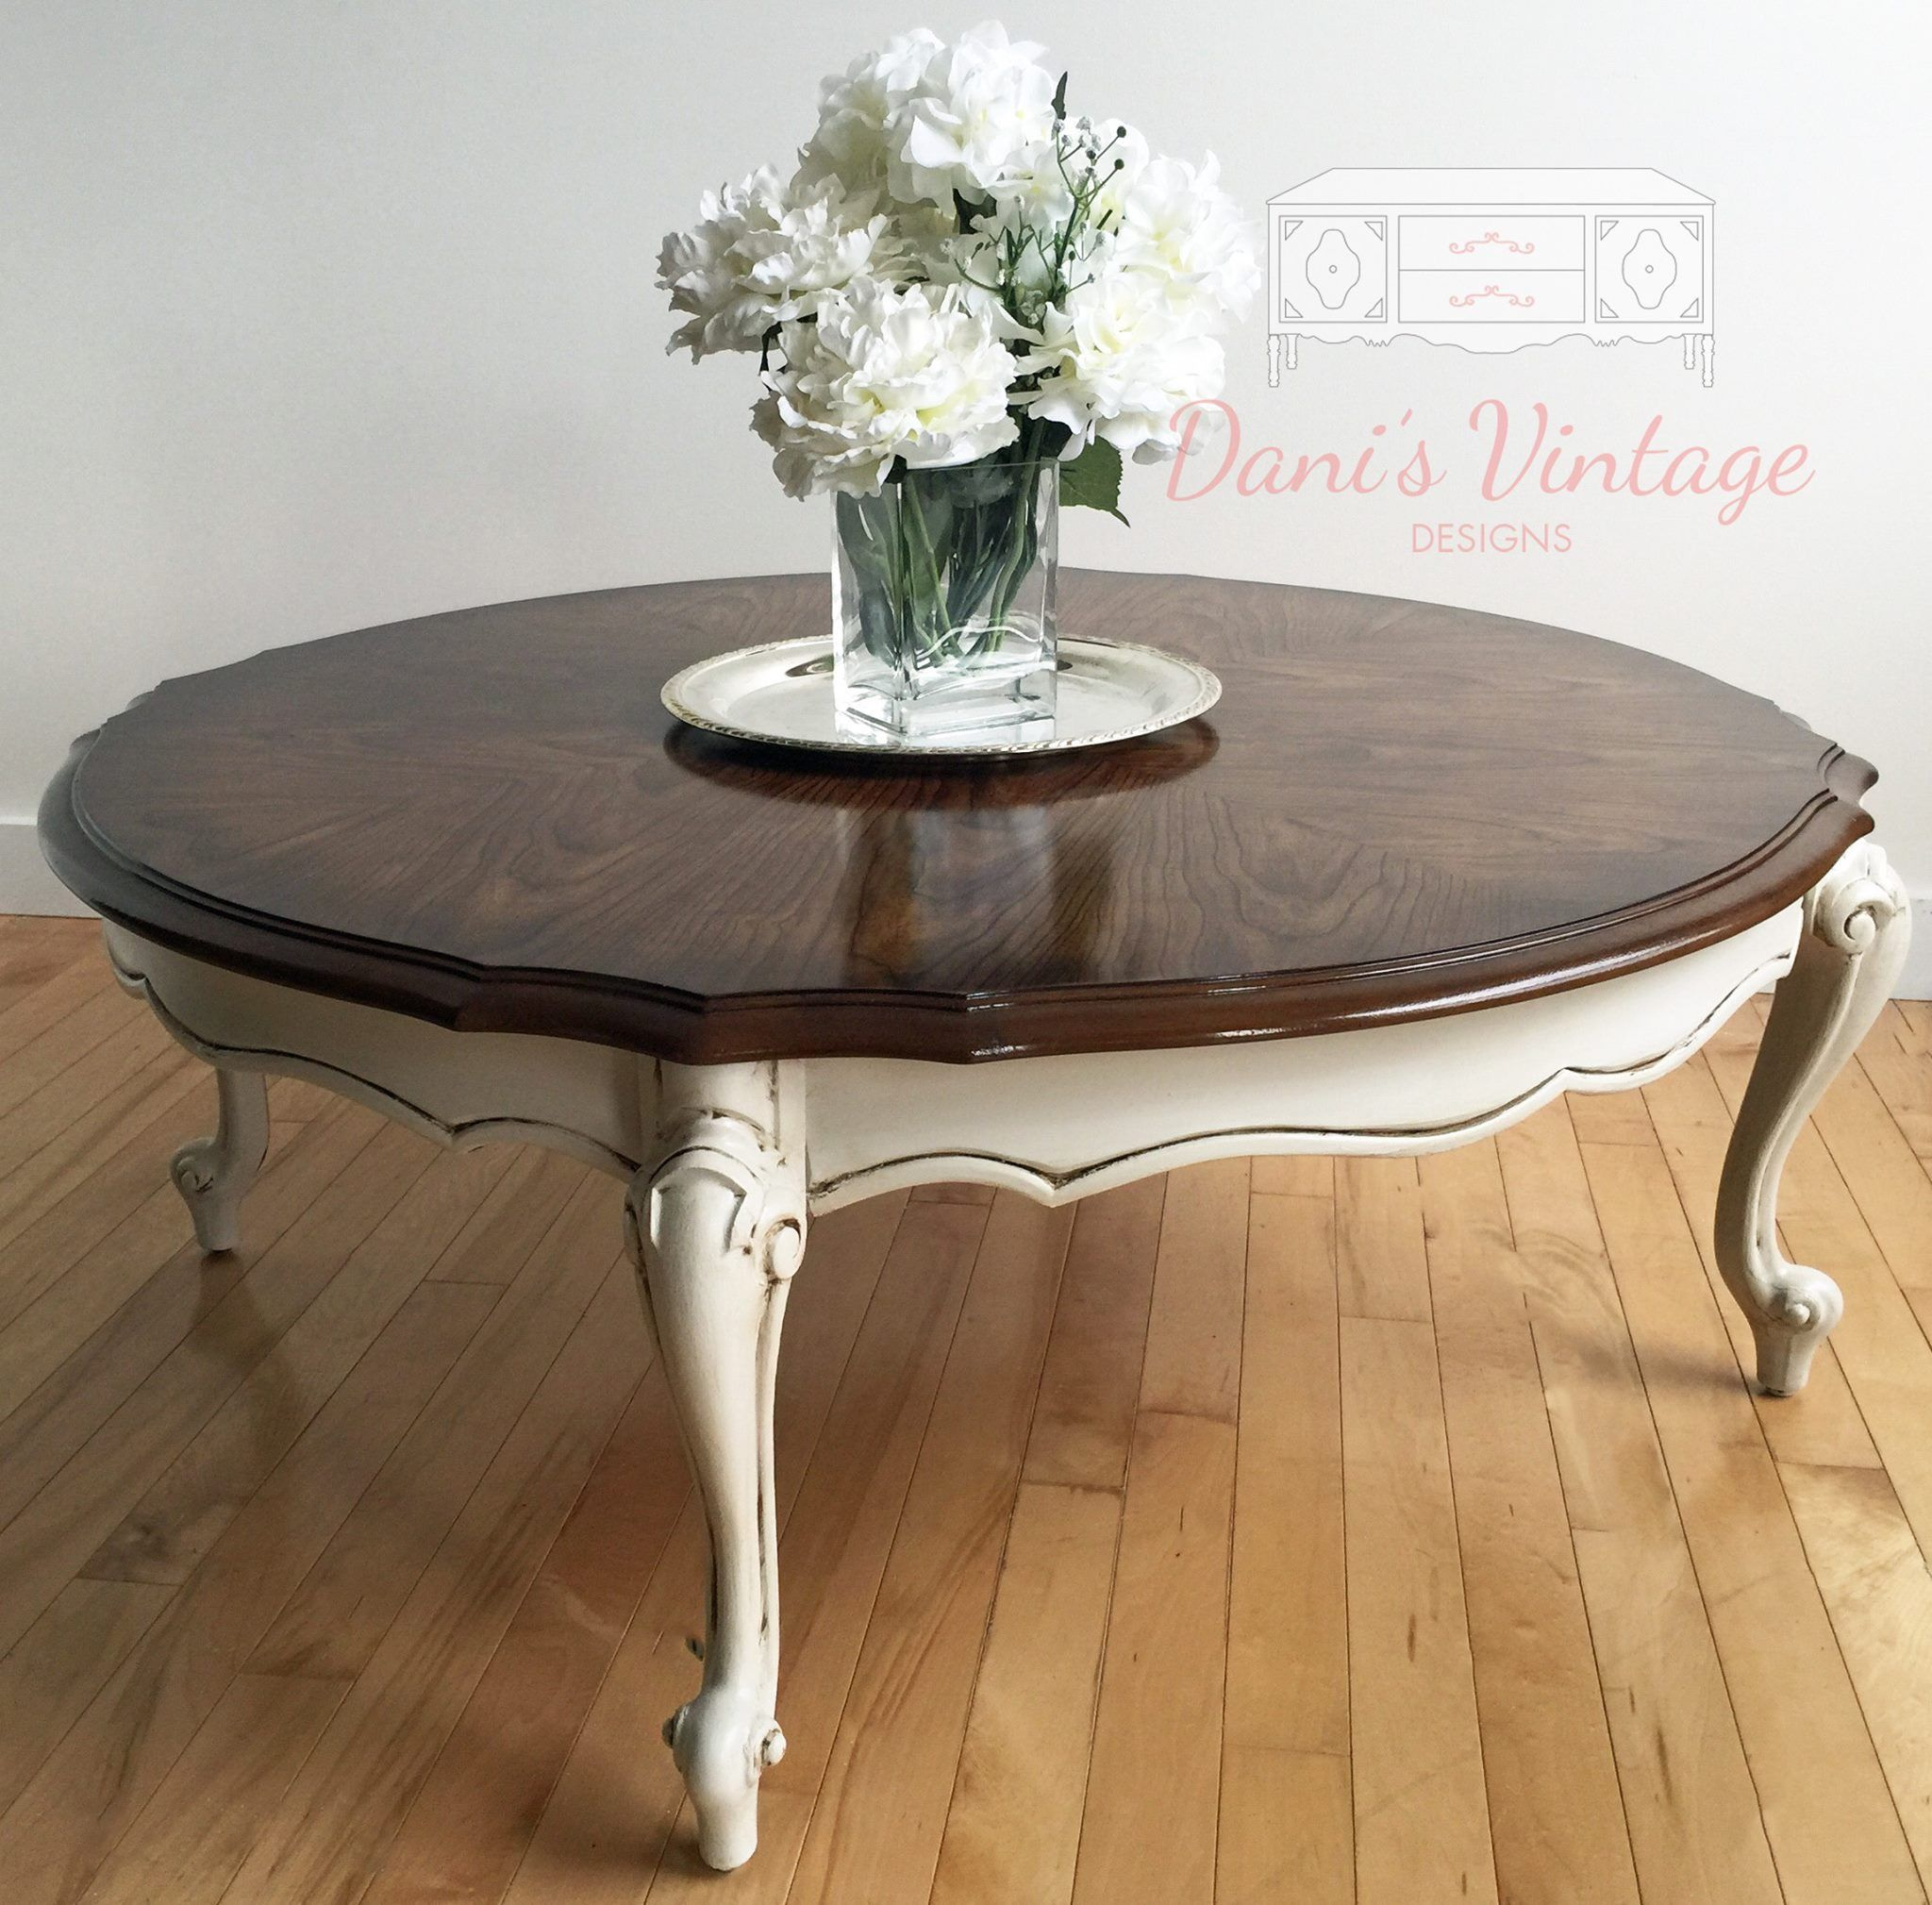 French Provincial Round Coffee Table Round Coffee Table Decor